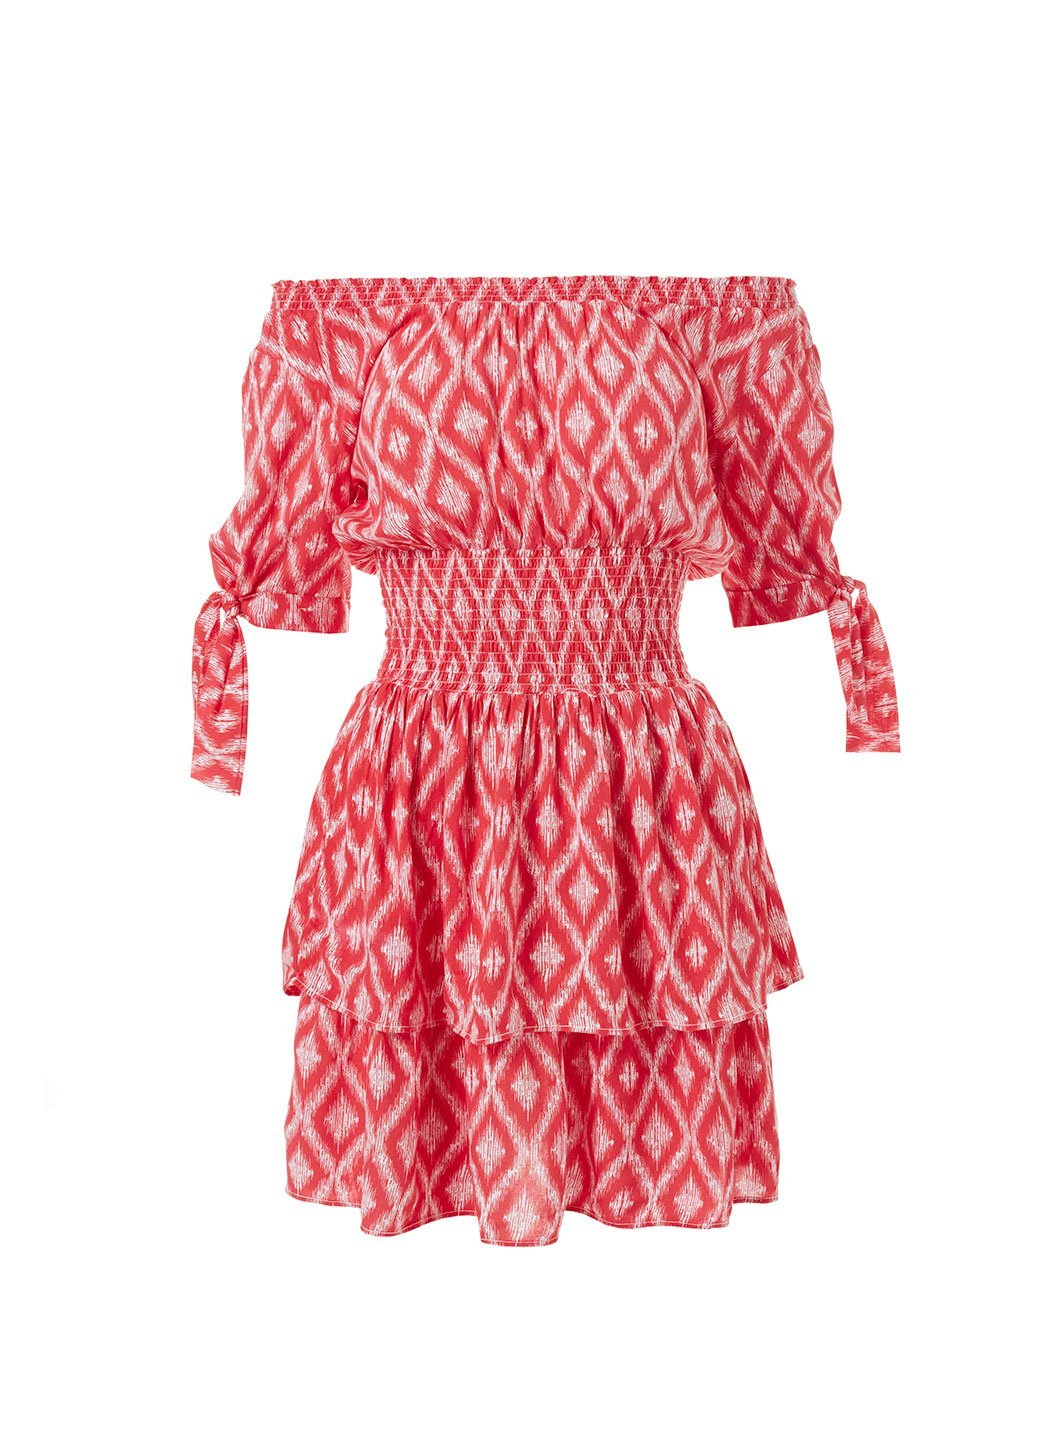 camilla red ikat offtheshoulder short dress 2019